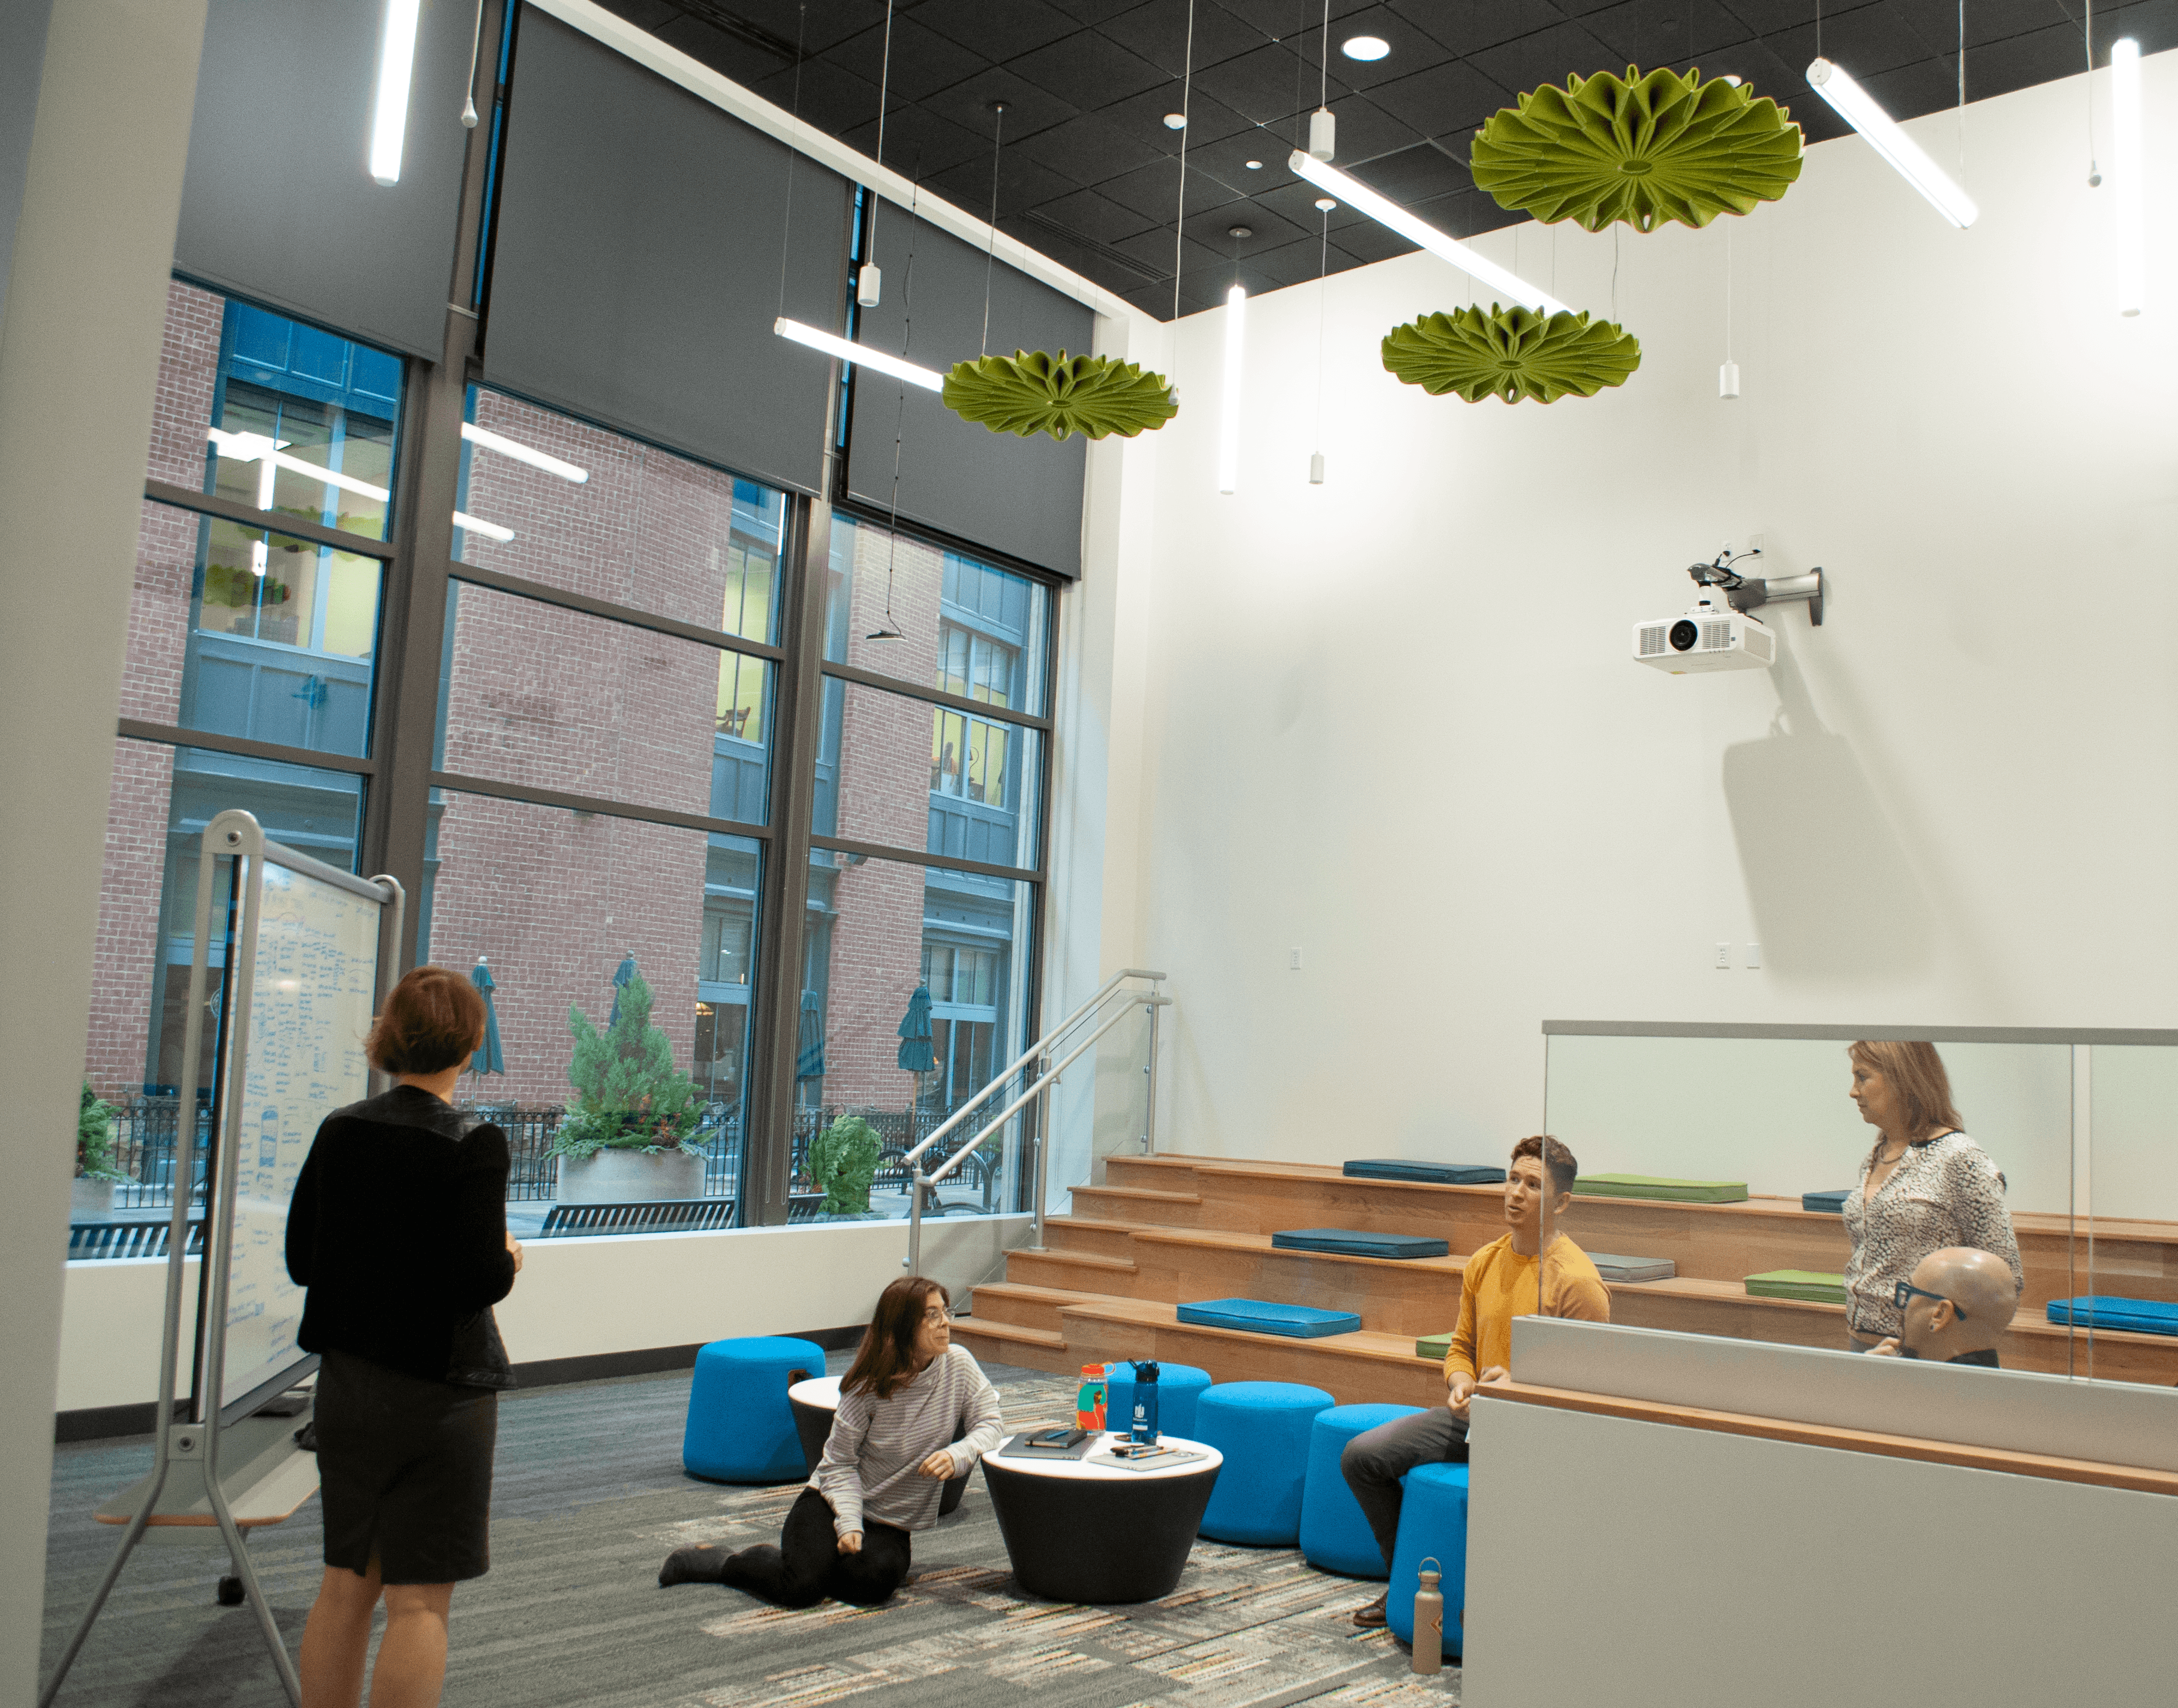 cooperative workspace with stadium seating